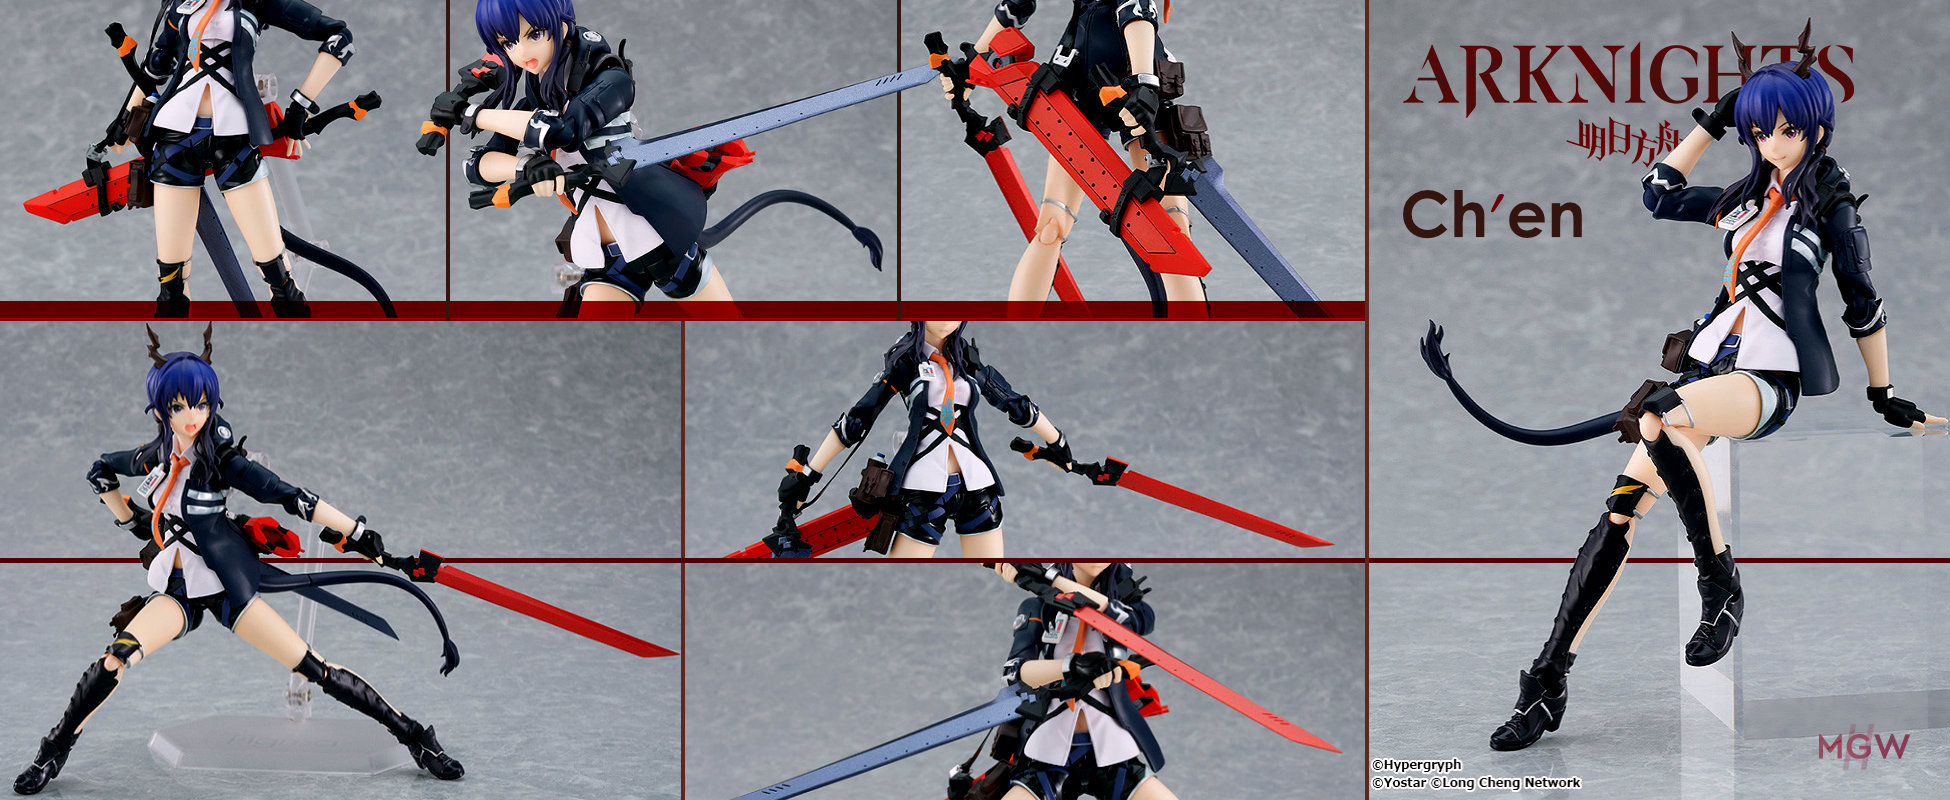 Arknights figma Chen by Max Factory MyGrailWatch Anime Figure Guide